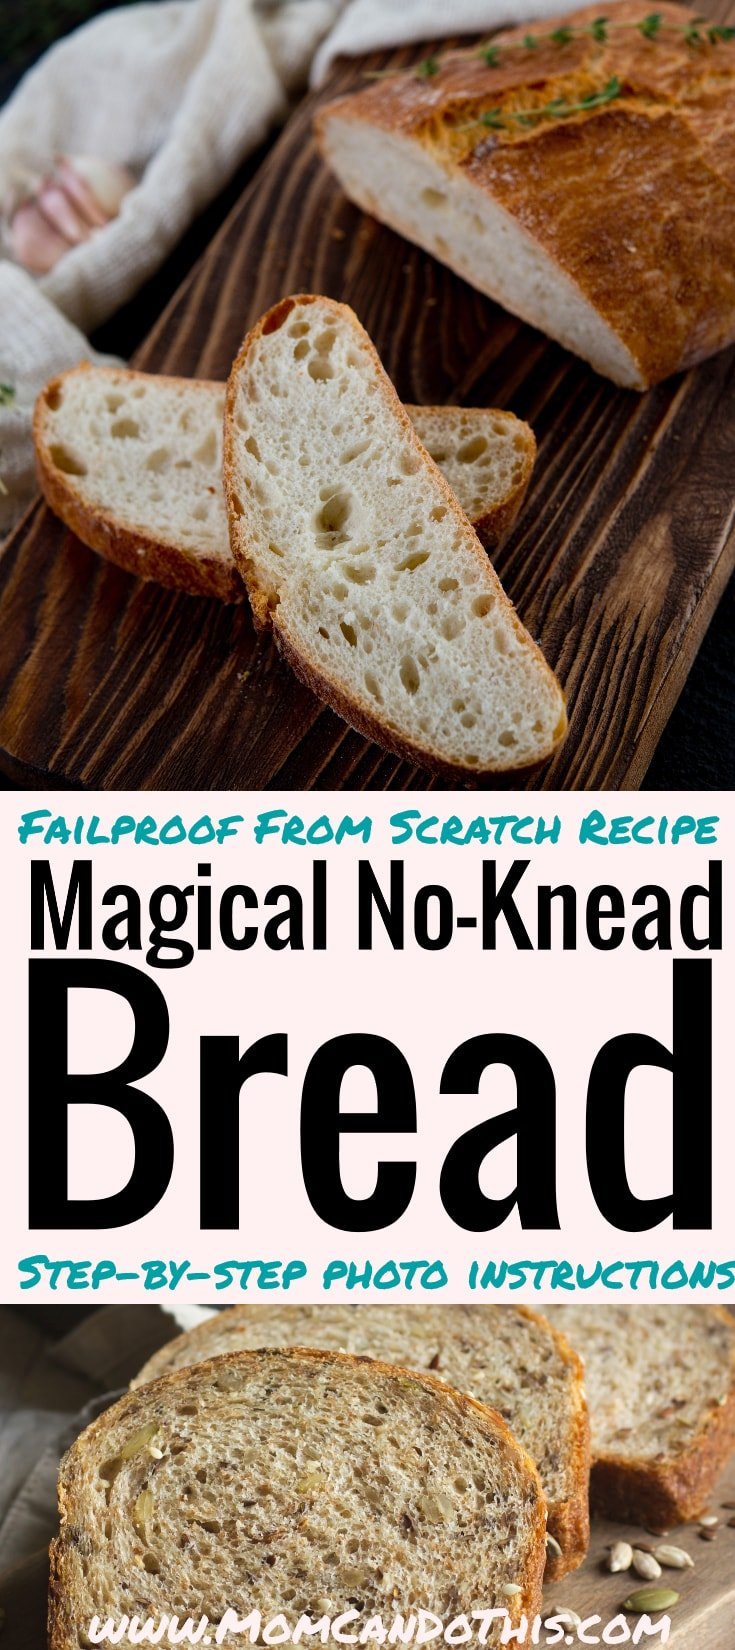 Failproof homemade bread recipe with four ingredients only. Pictured step-by-step instructions for crusty homemade bread. Ridiculously easy from scratch recipe that will impress your guests. Artisan bread recipe made easy. Stop searching bread recipes, make this one! Printable recipe.